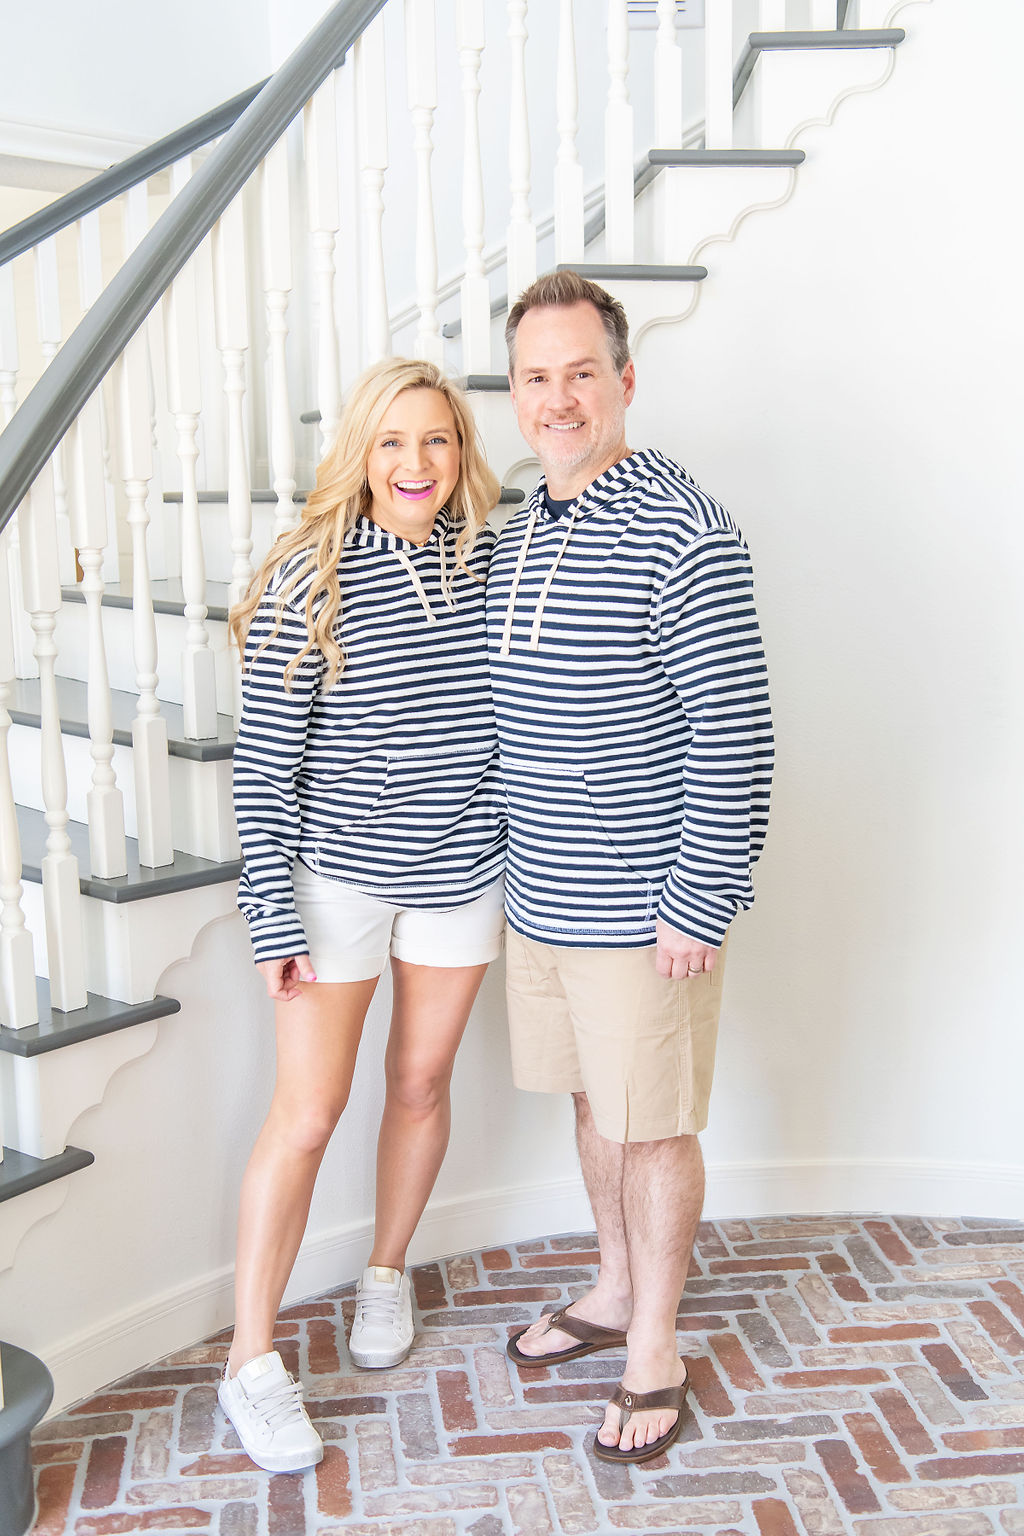 Little Black Dresses by popular Houston fashion blog, The House of Fancy: image of a man and woman standing together and wearing a blue and white stripe hoodie, tan shorts, brown sandals, white shorts, and white sneakers.